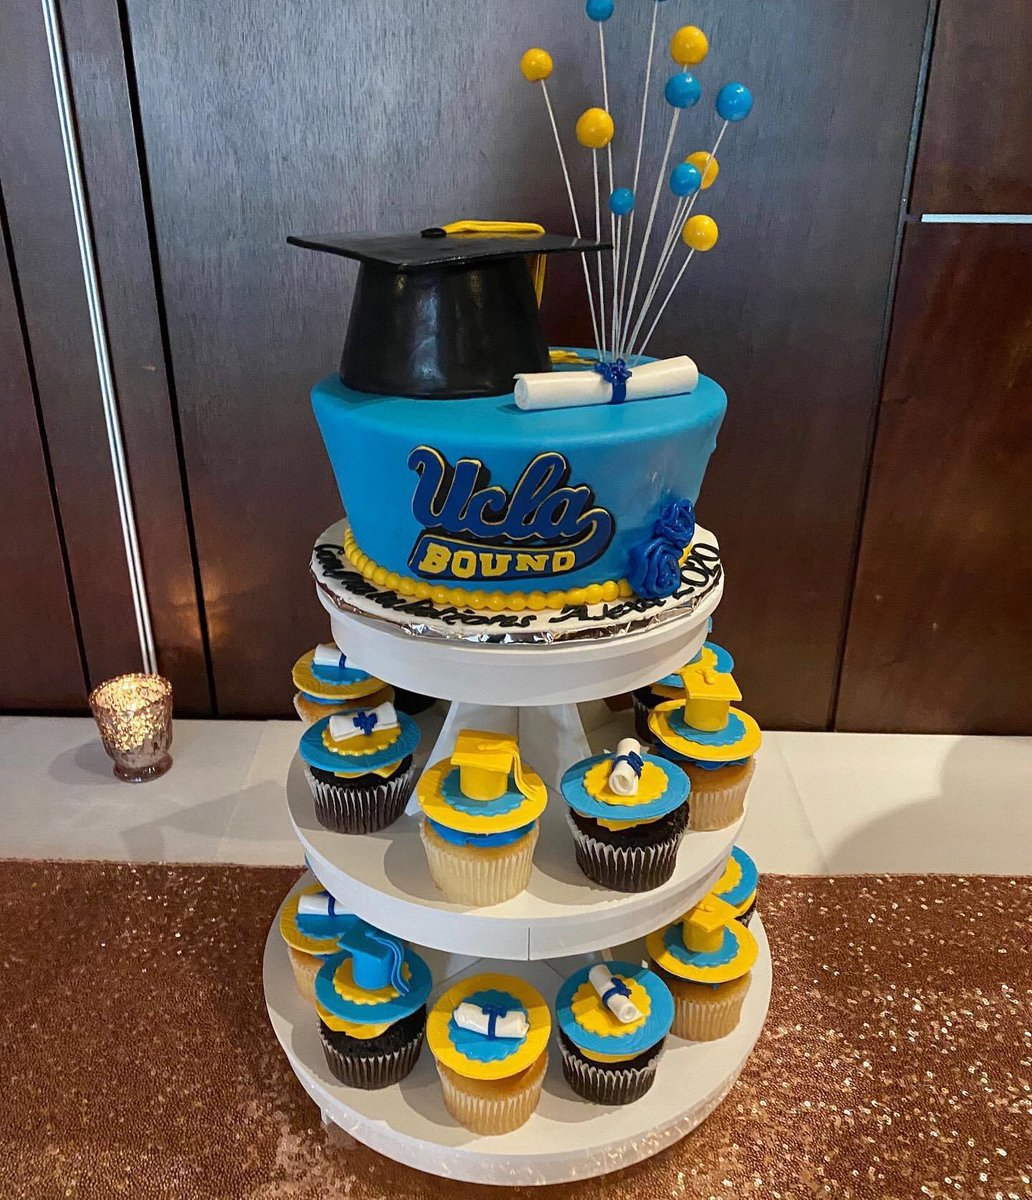 Shout out to the @exclusivecakeshop for this awesome #GraduationCake for @alexacyr #UCLABound 🙏 https://t.co/O6XizEAM4p